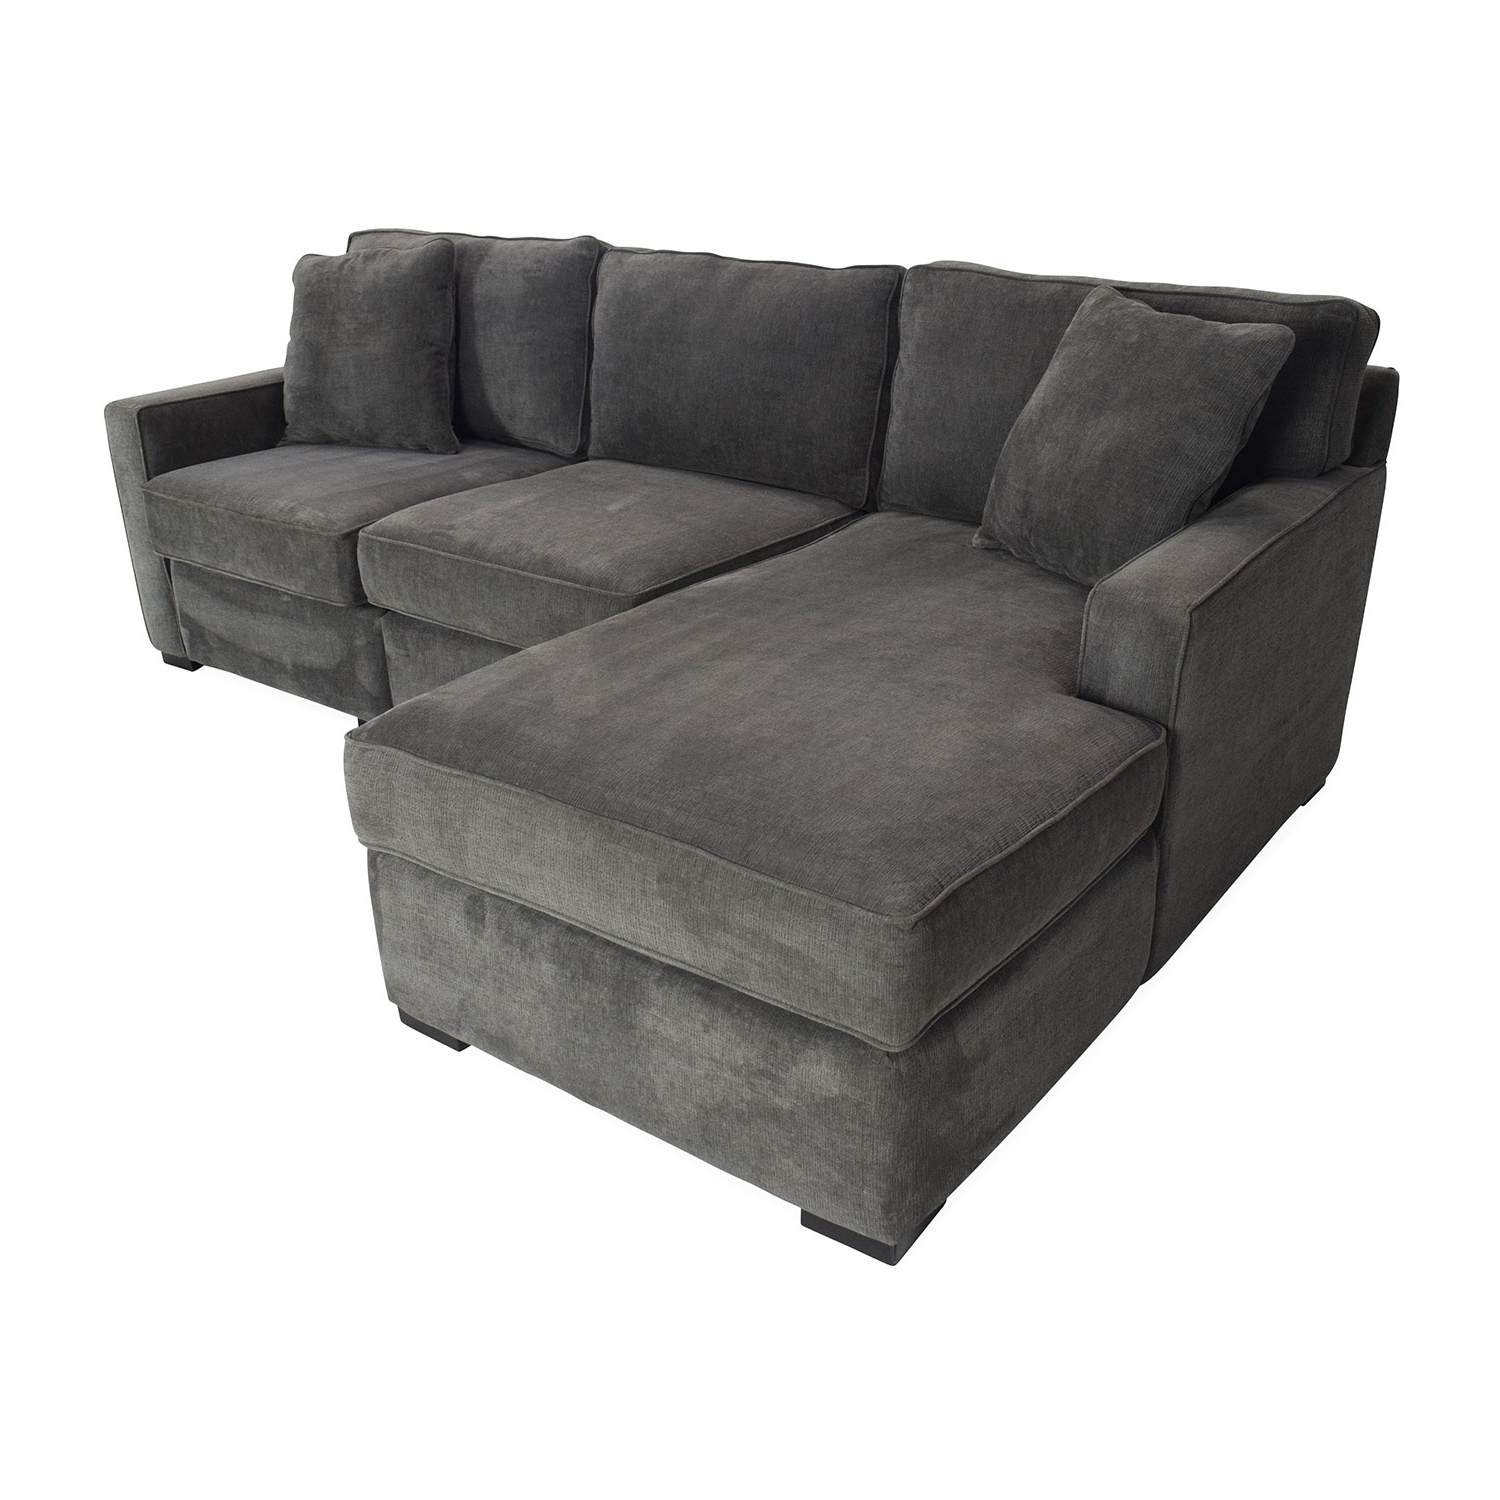 [%51% Off – Macy's Radley Sectional Sofa / Sofas Inside Well Known Macys Sectional Sofas|Macys Sectional Sofas Intended For 2017 51% Off – Macy's Radley Sectional Sofa / Sofas|2017 Macys Sectional Sofas For 51% Off – Macy's Radley Sectional Sofa / Sofas|Most Popular 51% Off – Macy's Radley Sectional Sofa / Sofas Pertaining To Macys Sectional Sofas%] (View 2 of 15)